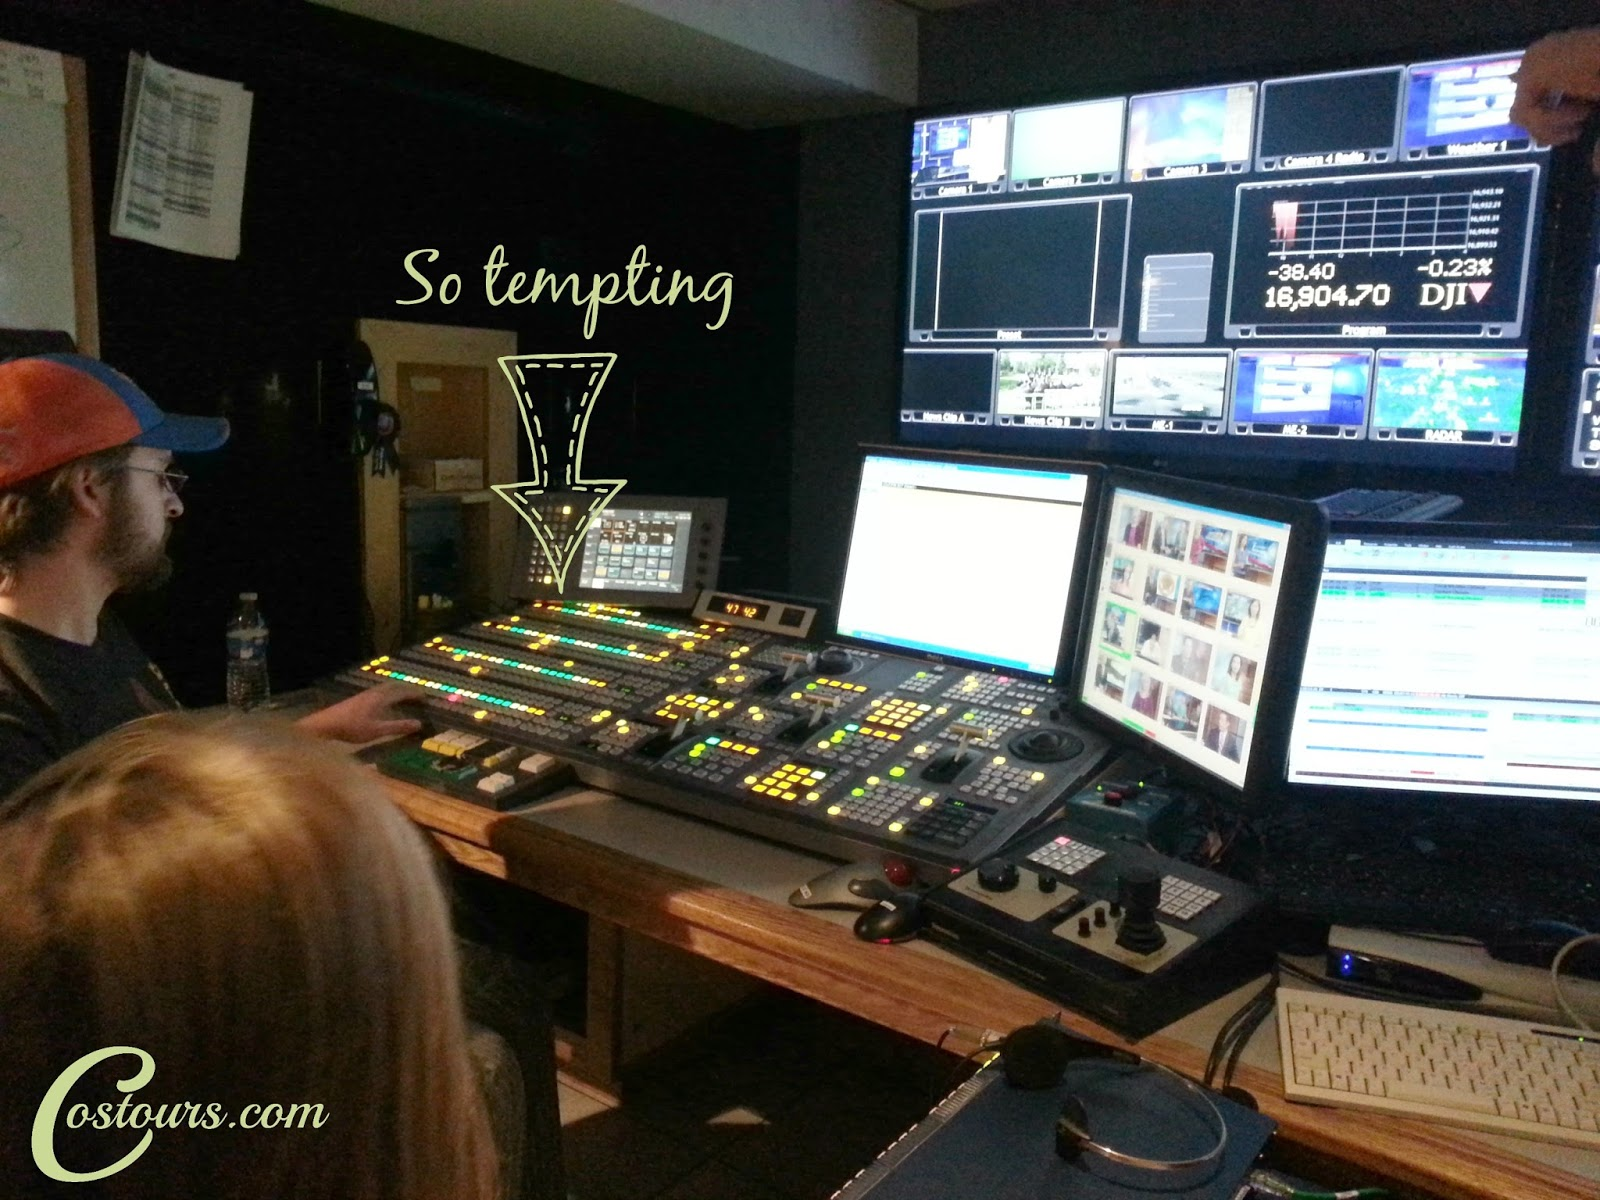 Go behind the scenes at a news station